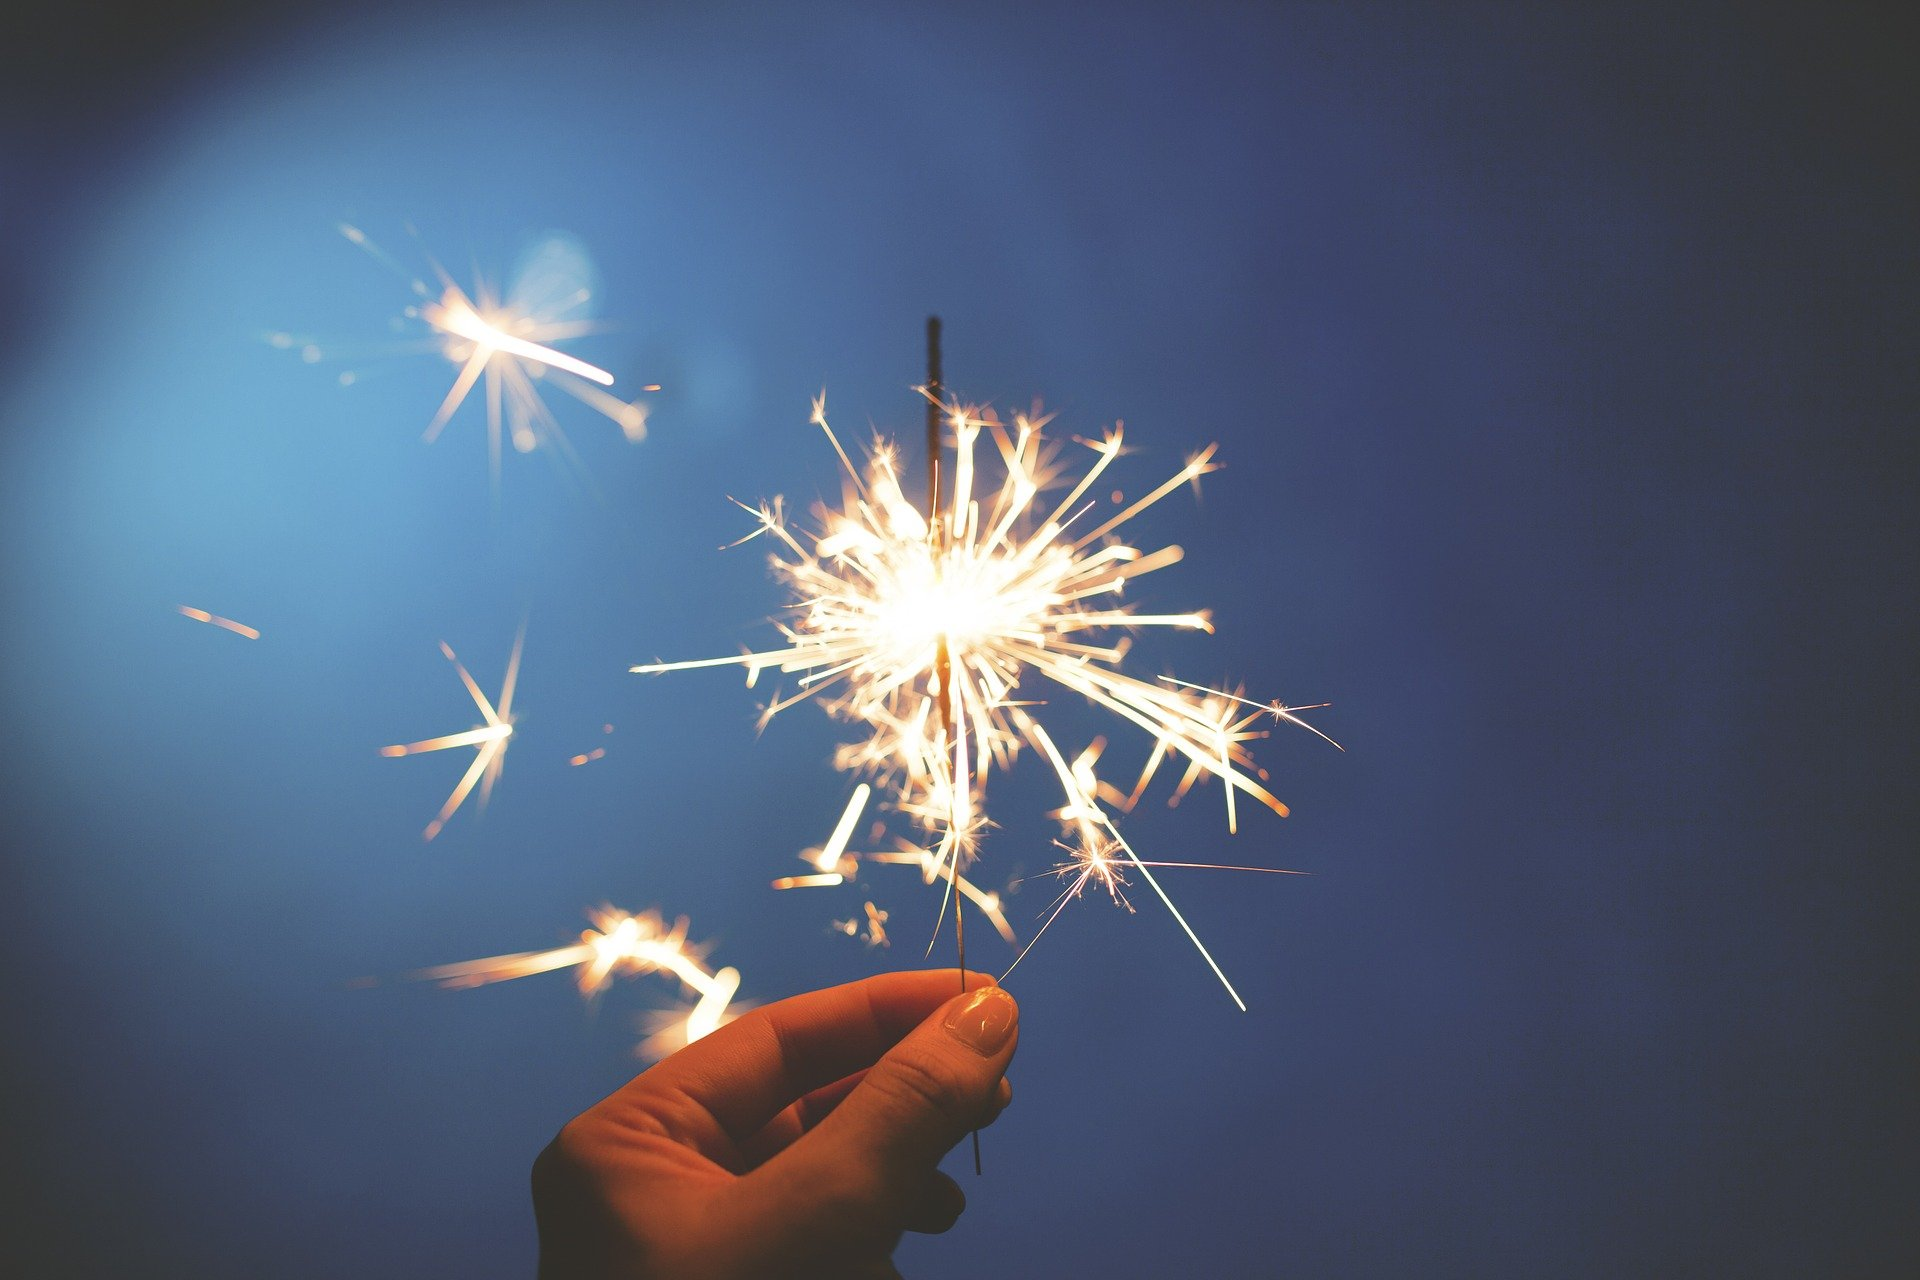 Image of a hand holding a sparkler